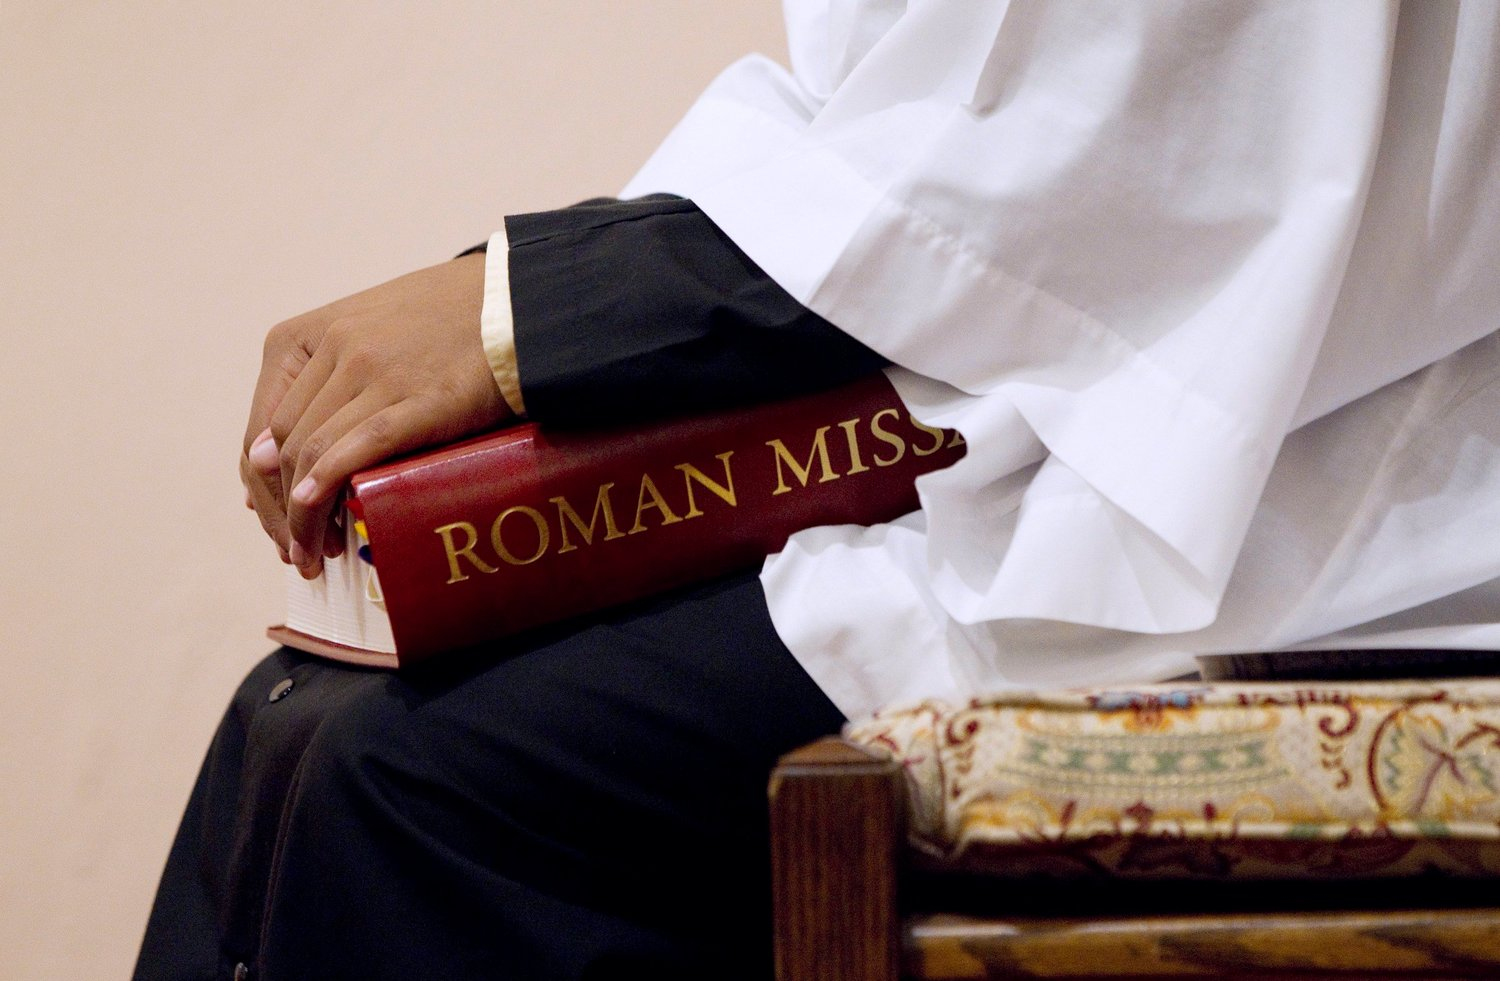 An altar server holds a copy of the Roman Missal during Mass at St. Joseph Catholic Church in Alexandria, Va., in this 2011 file photo.